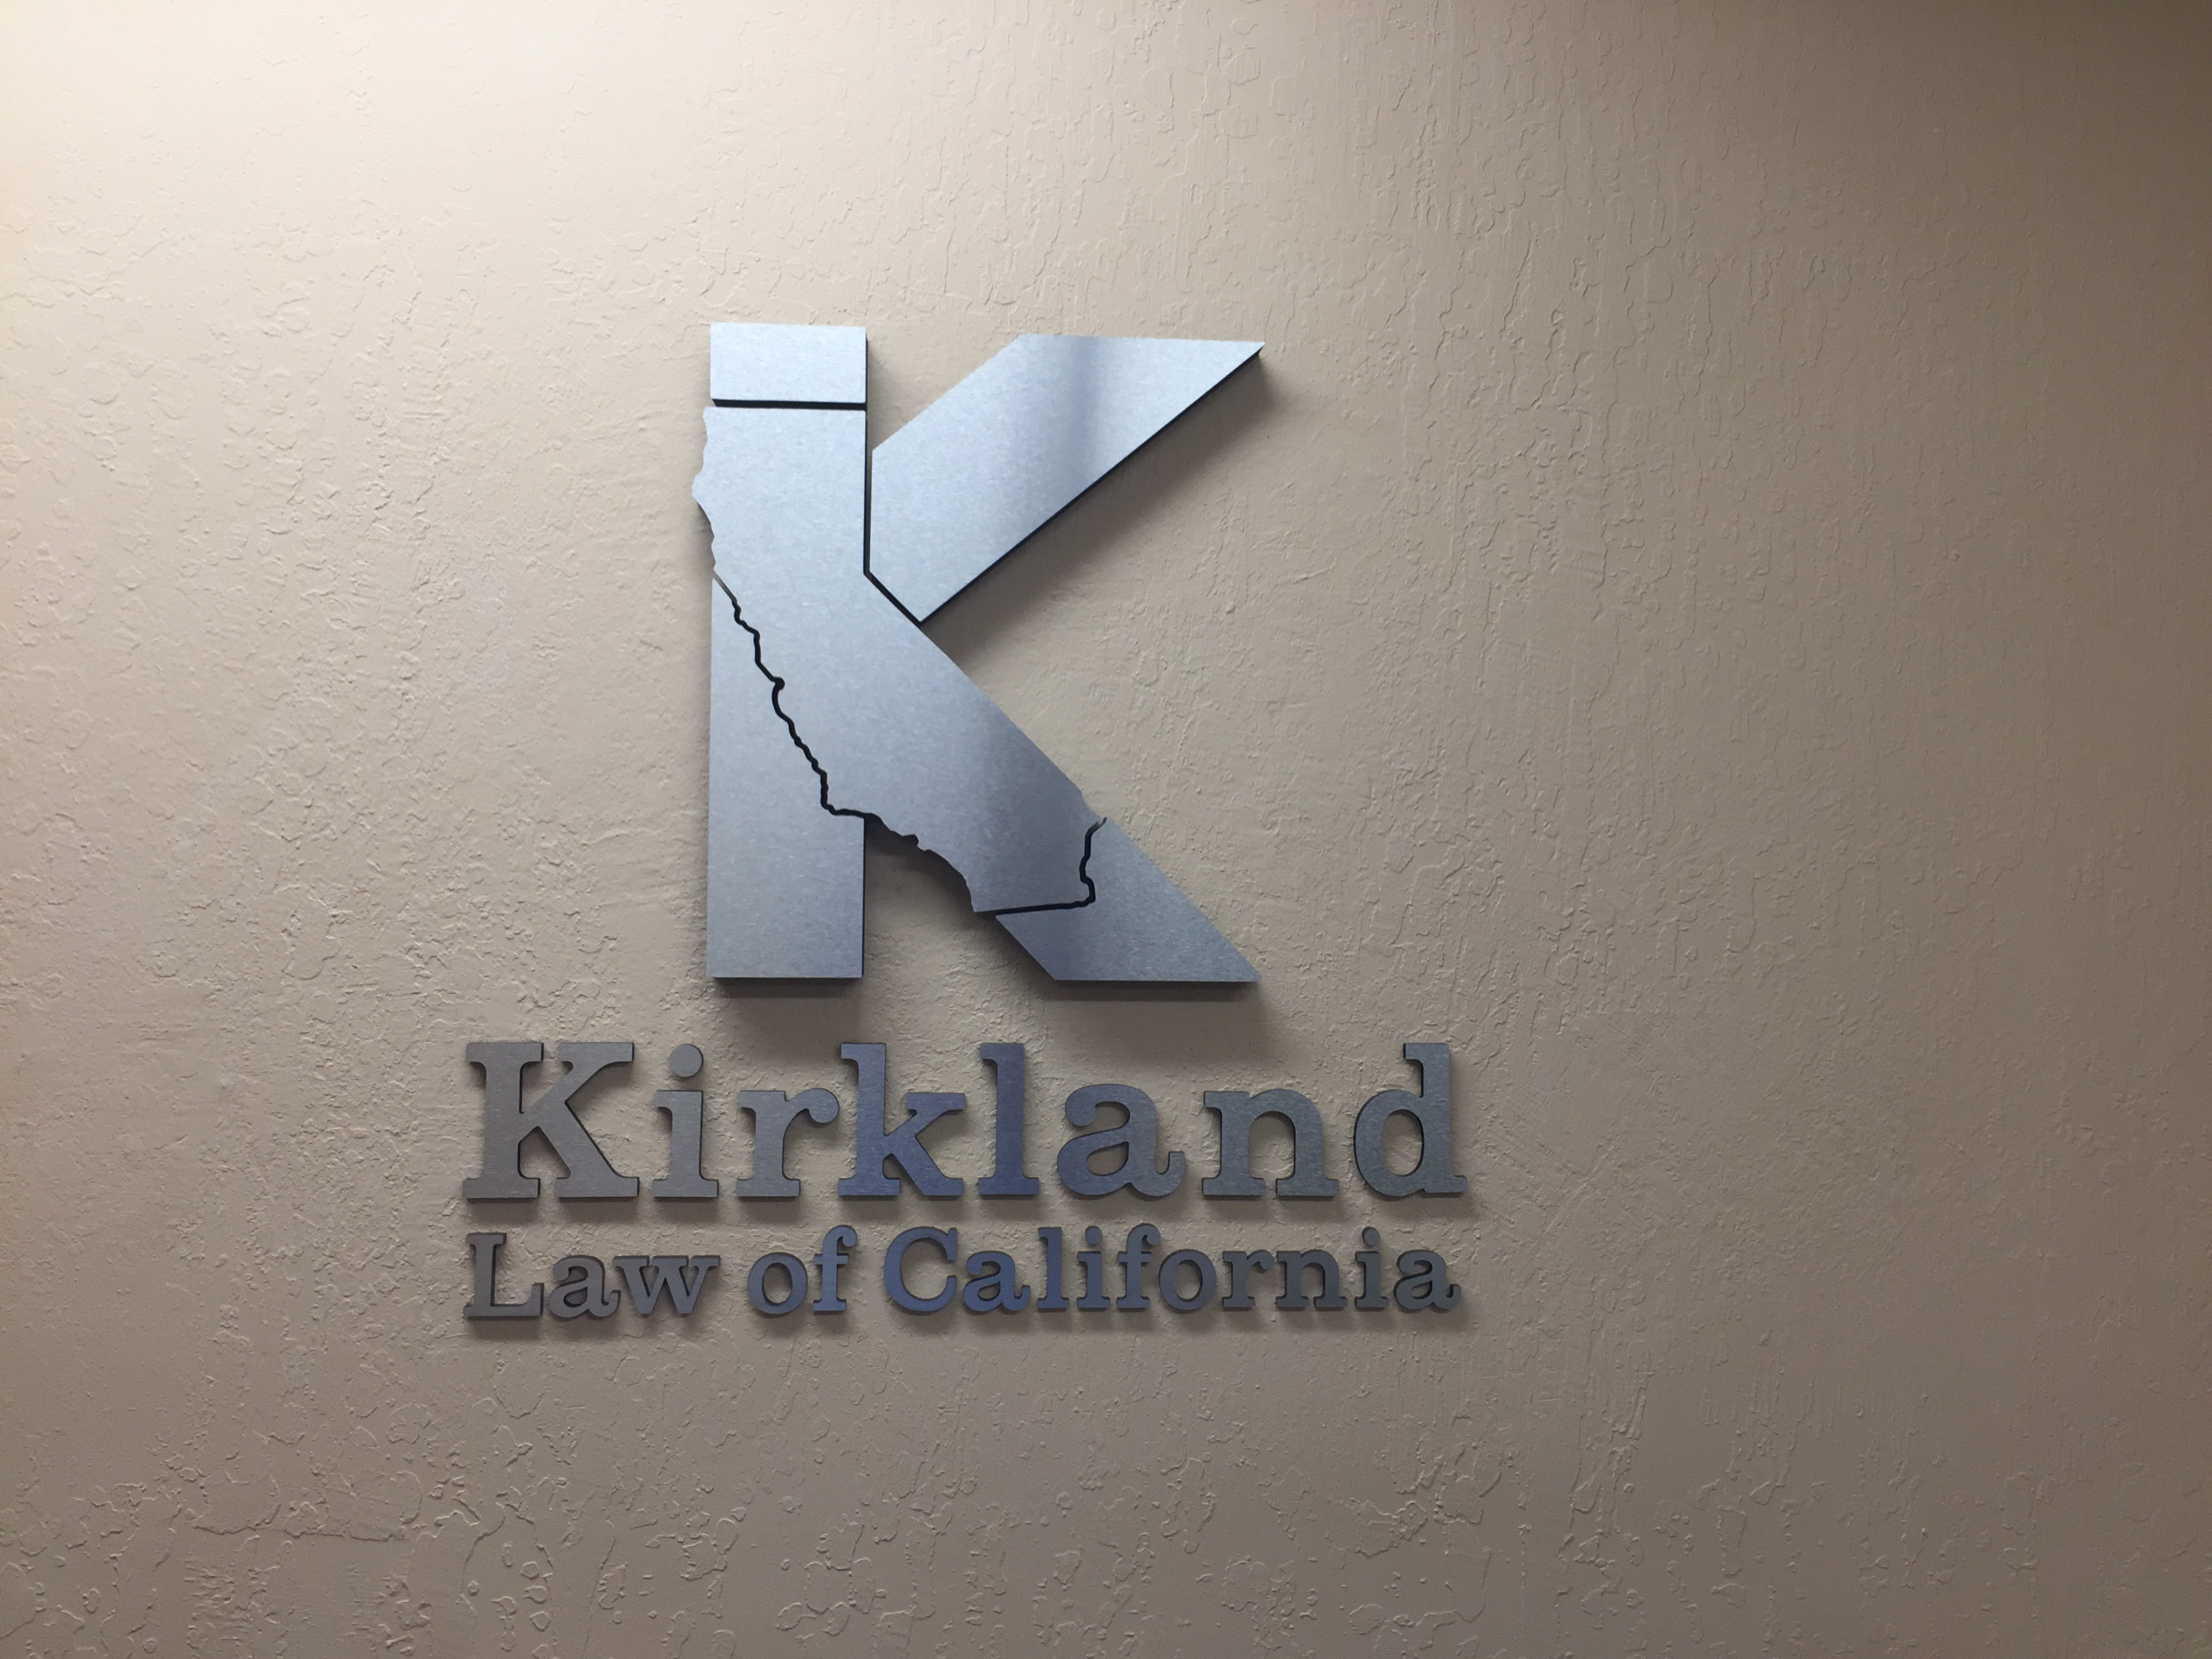 Kirkland Law of California